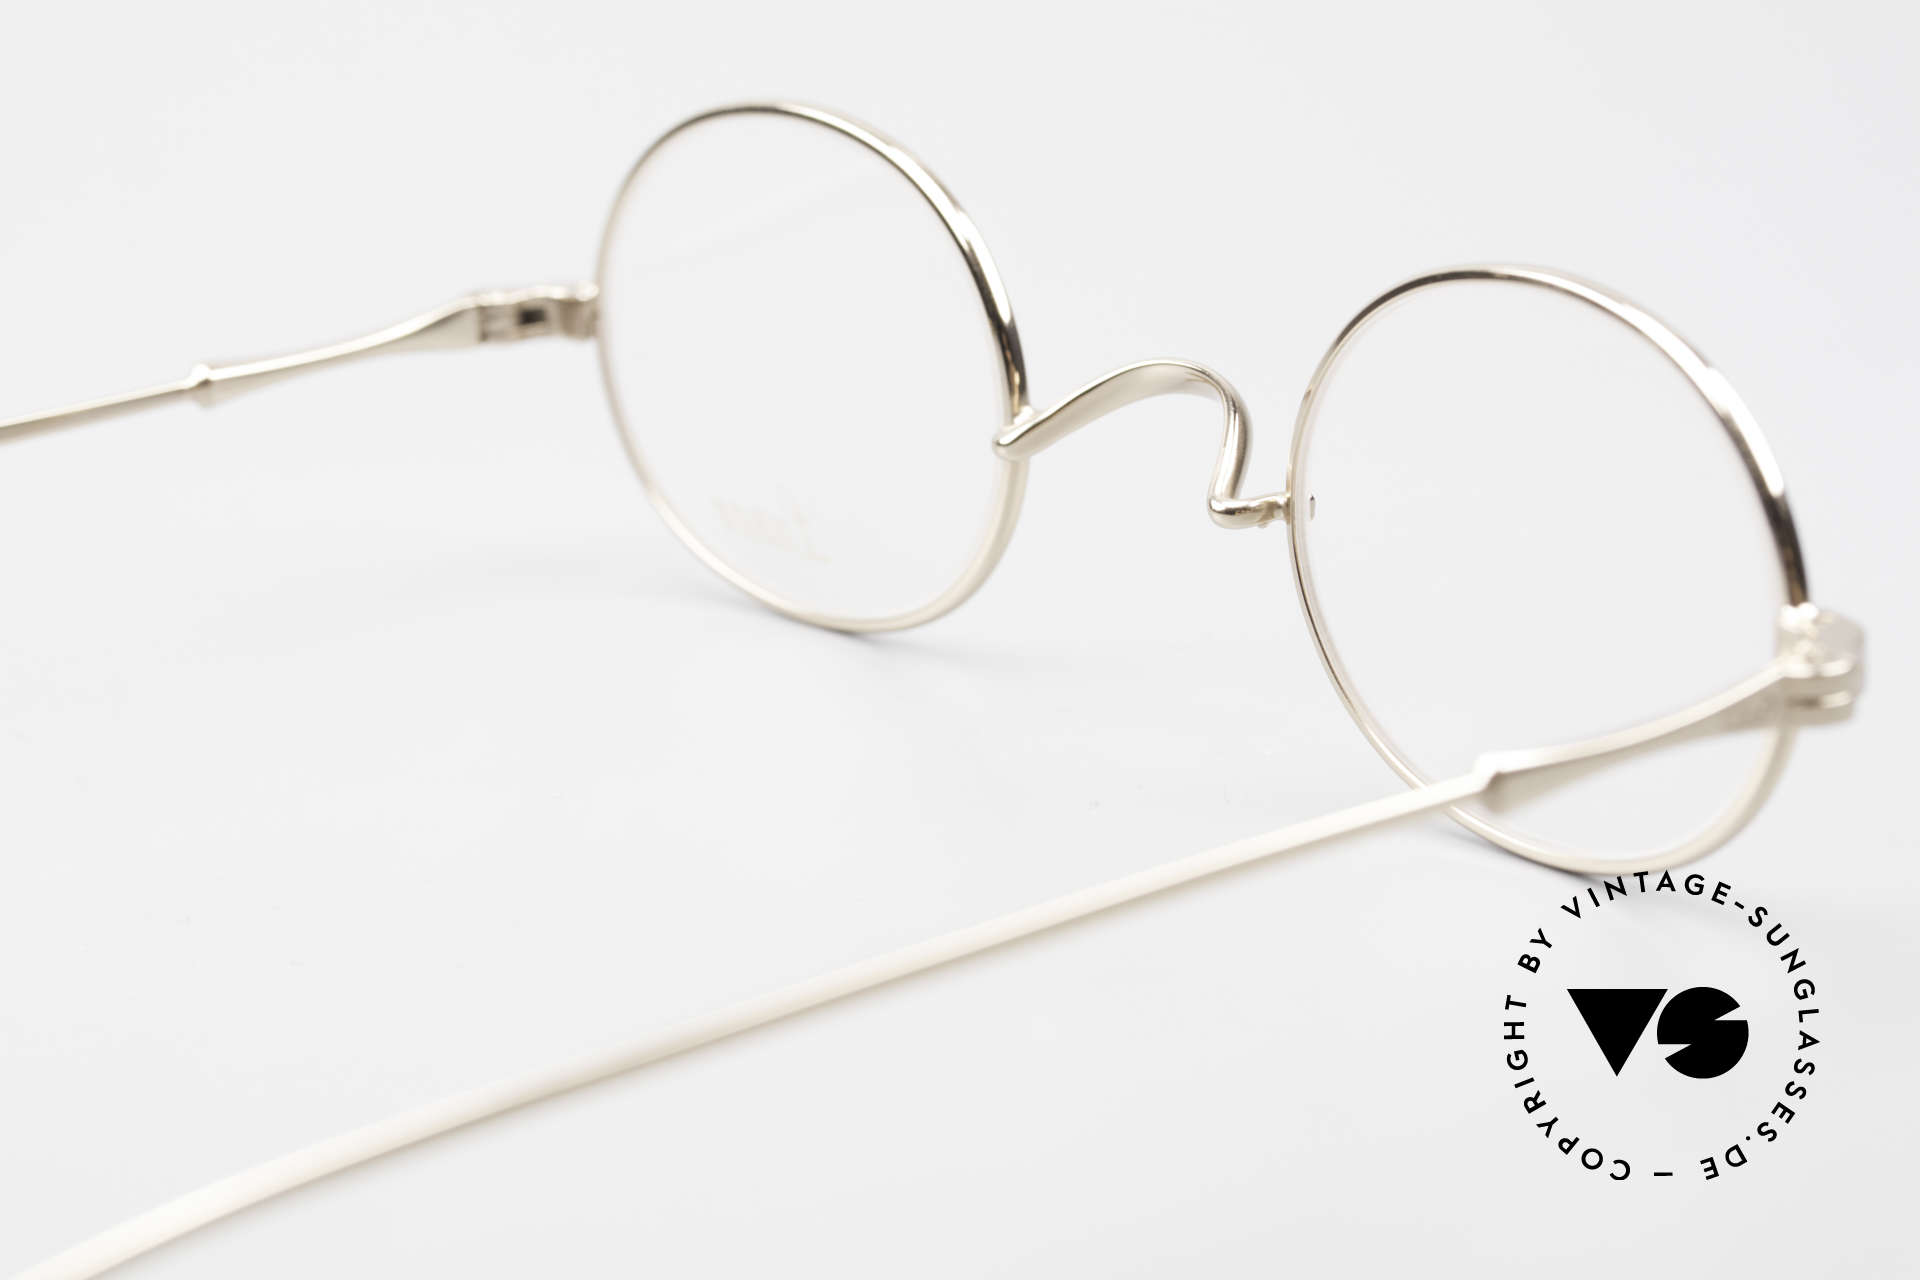 Lunor II 10 Oval Lunor Frame Gold Plated, Size: small, Made for Men and Women